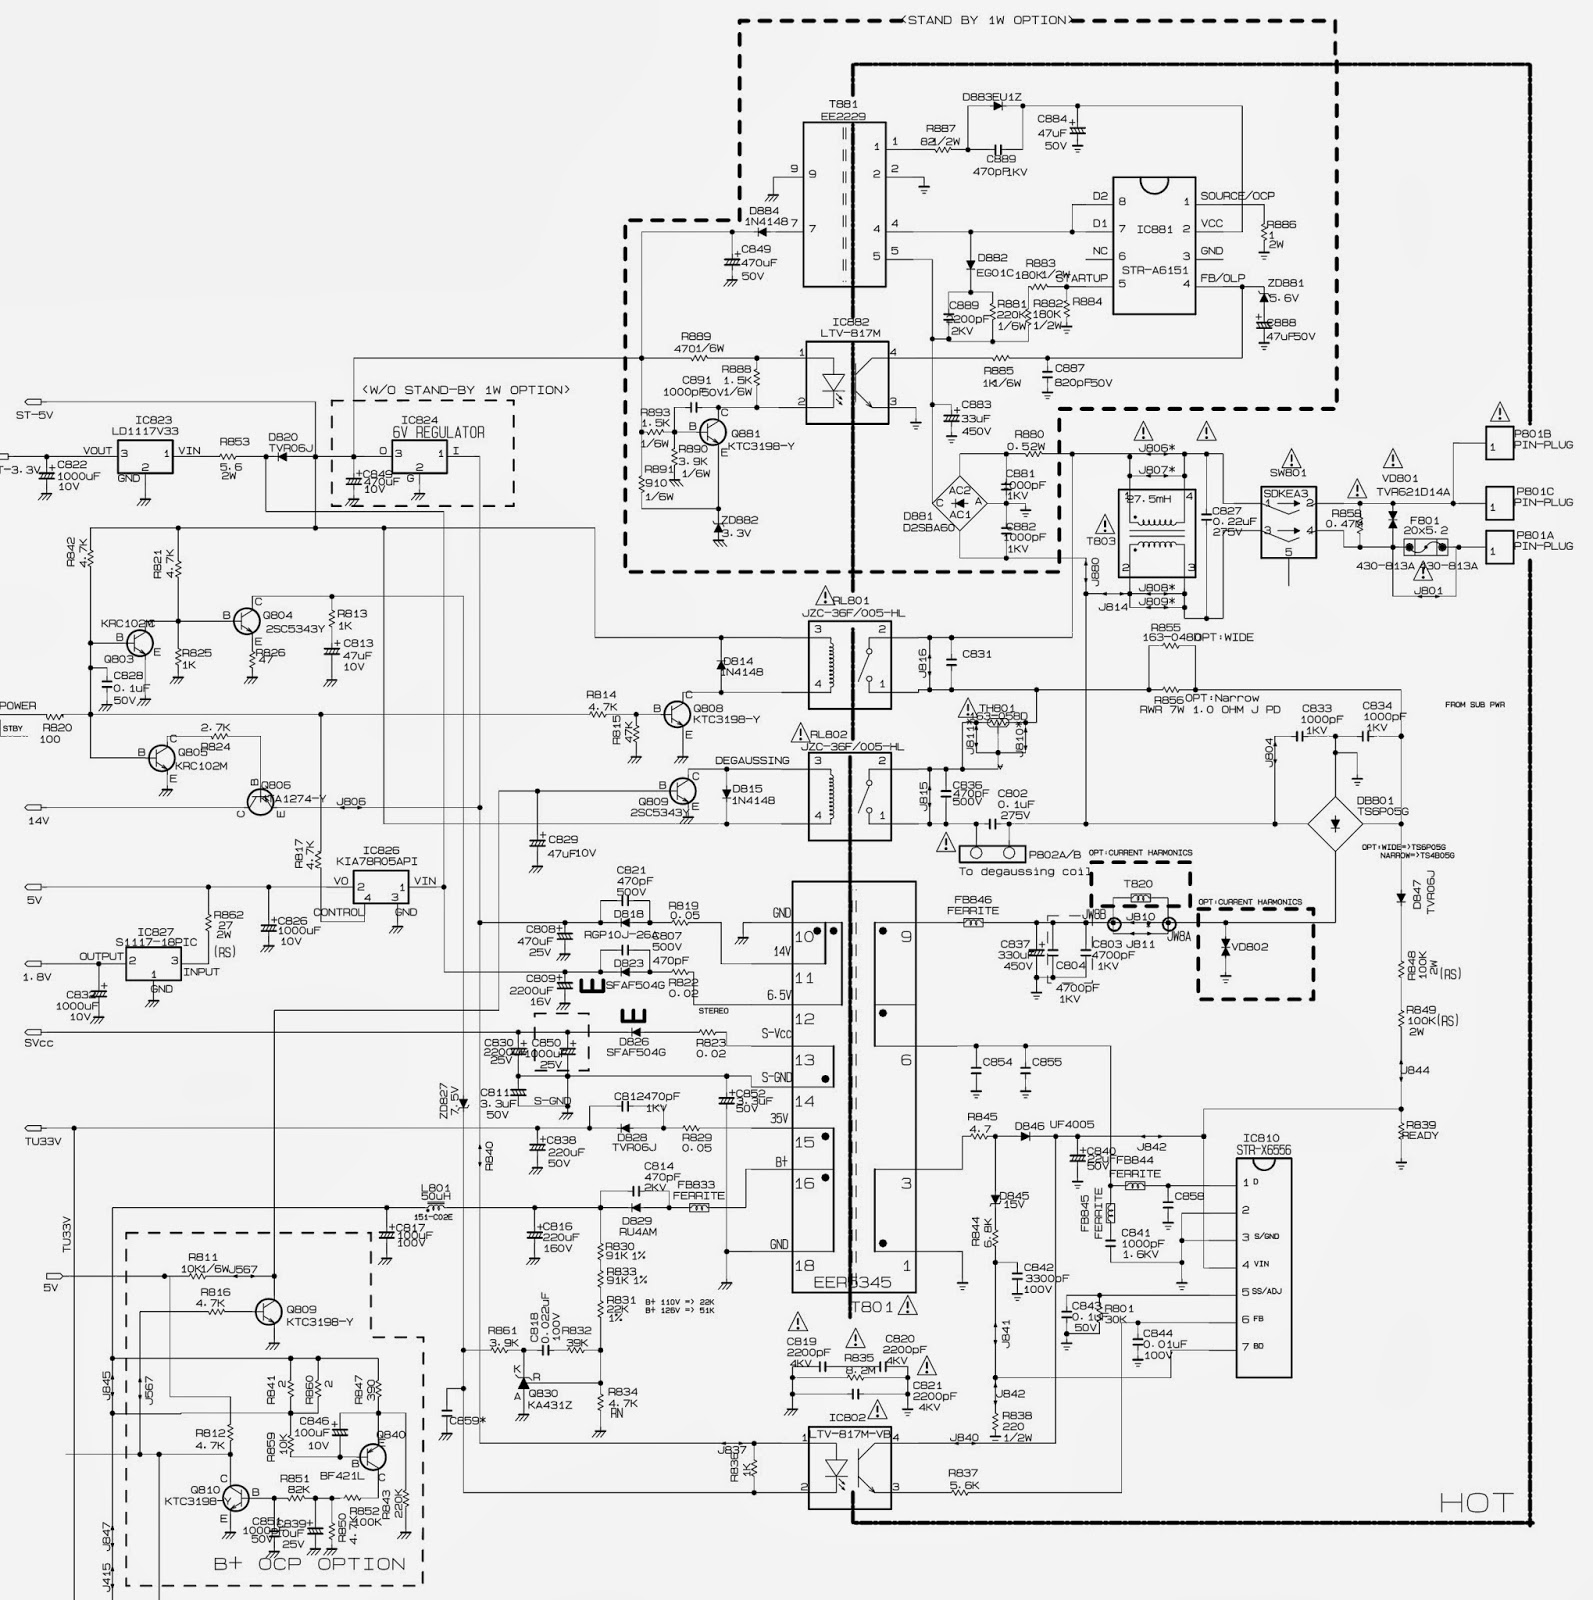 str x 6556 based smps schematic circuit diagram  [ 1593 x 1600 Pixel ]